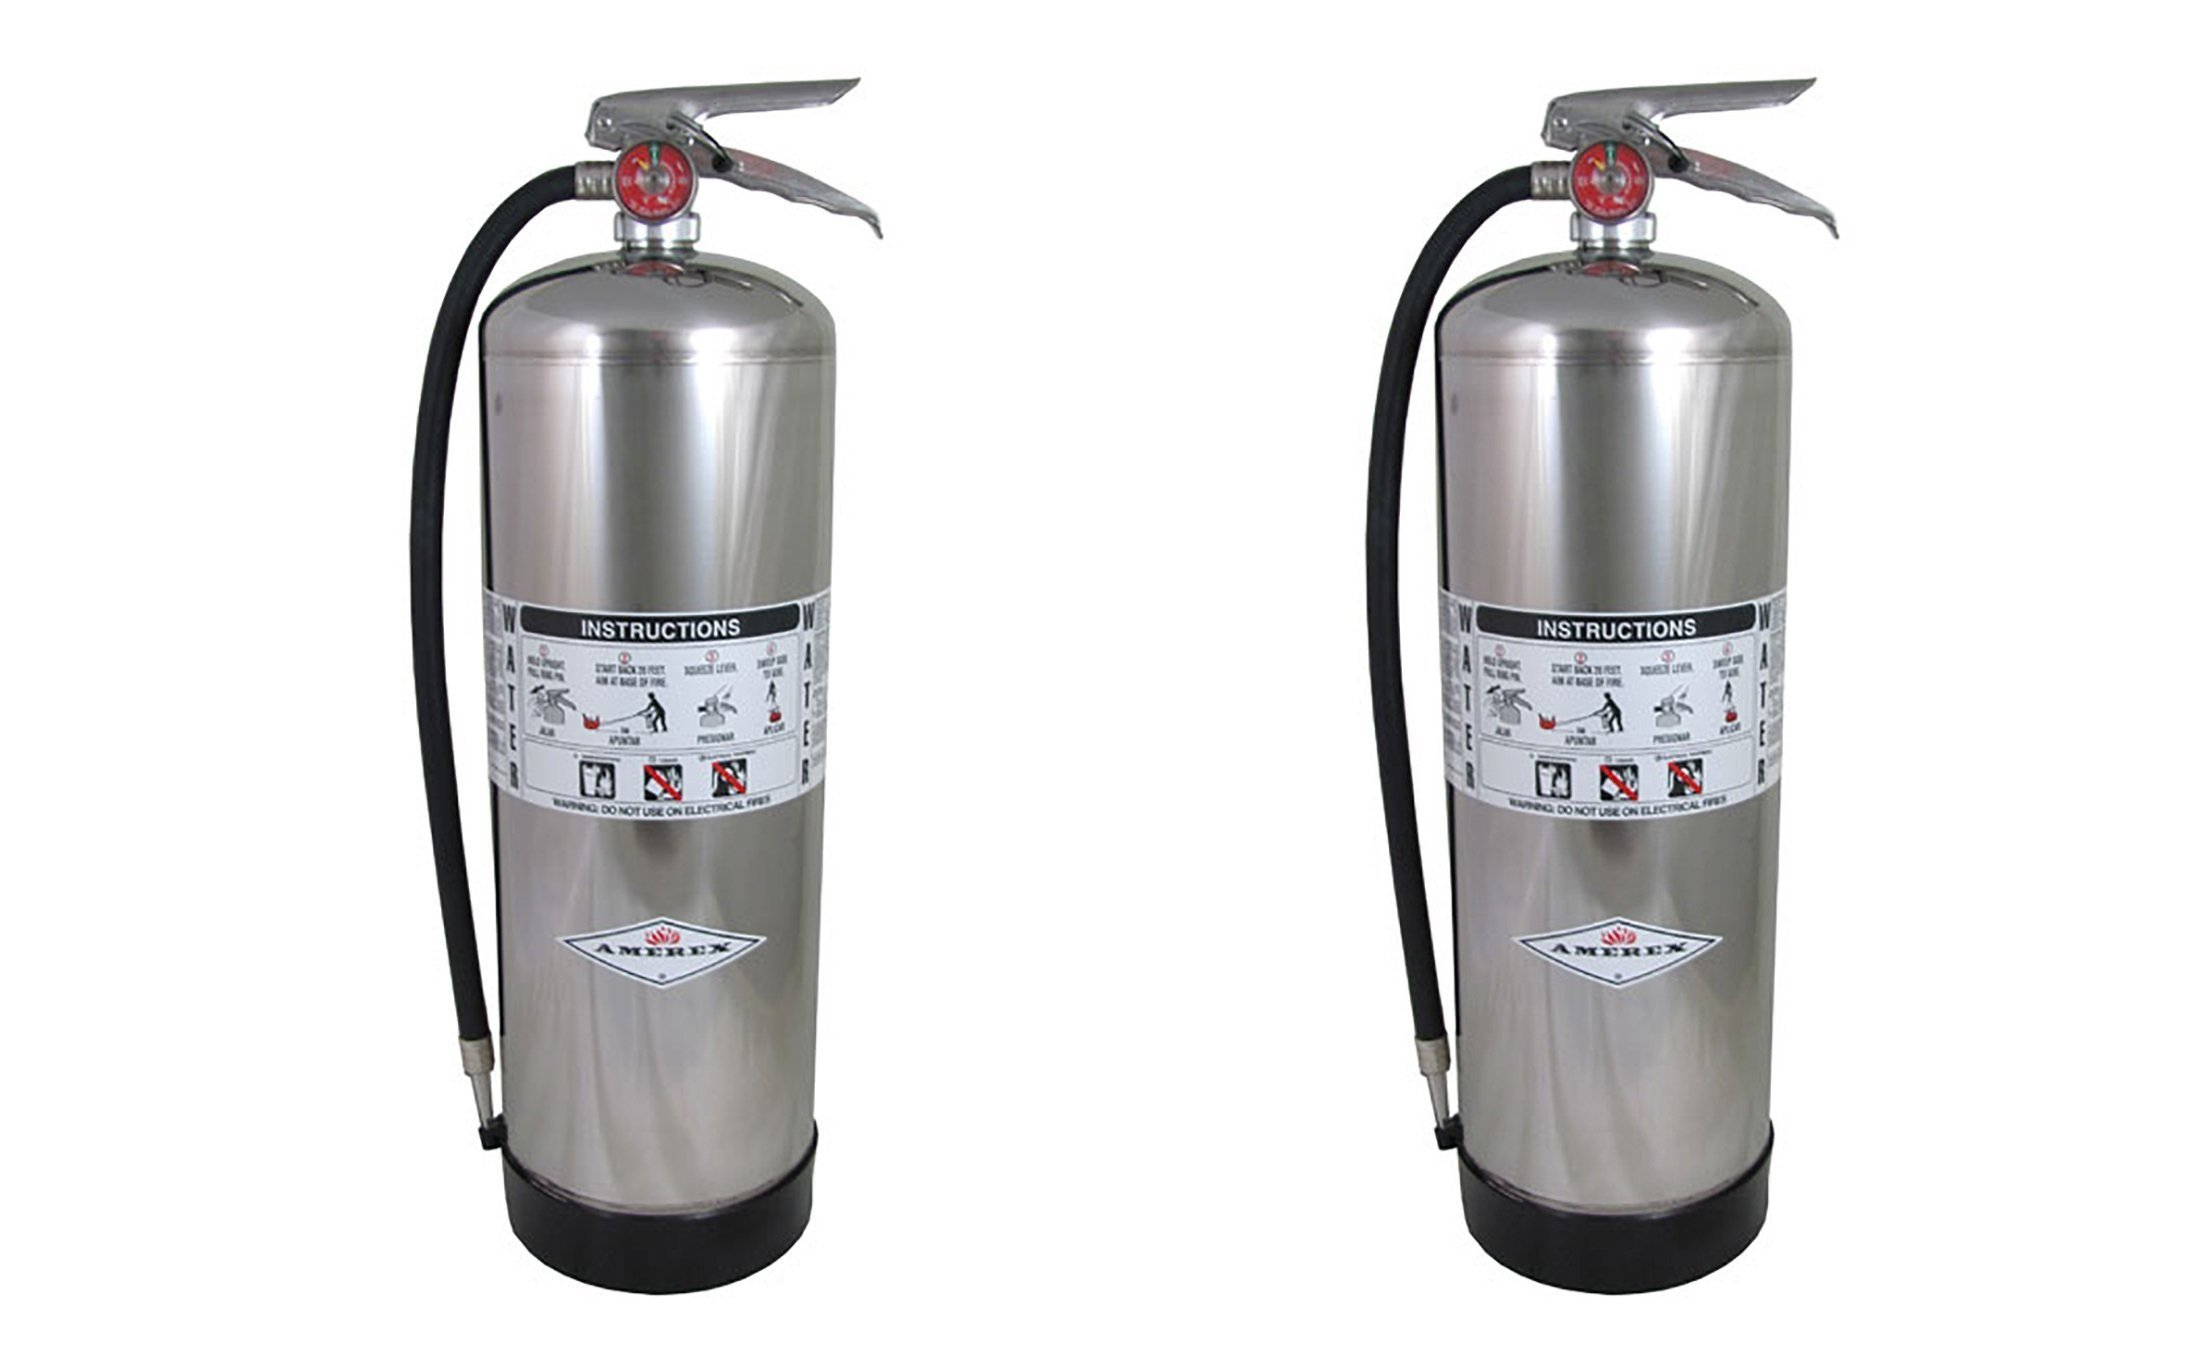 Amerex 240, 2.5 Gallon Water Class A Fire Extinguisher (2 PACK) by Amerex (Image #1)